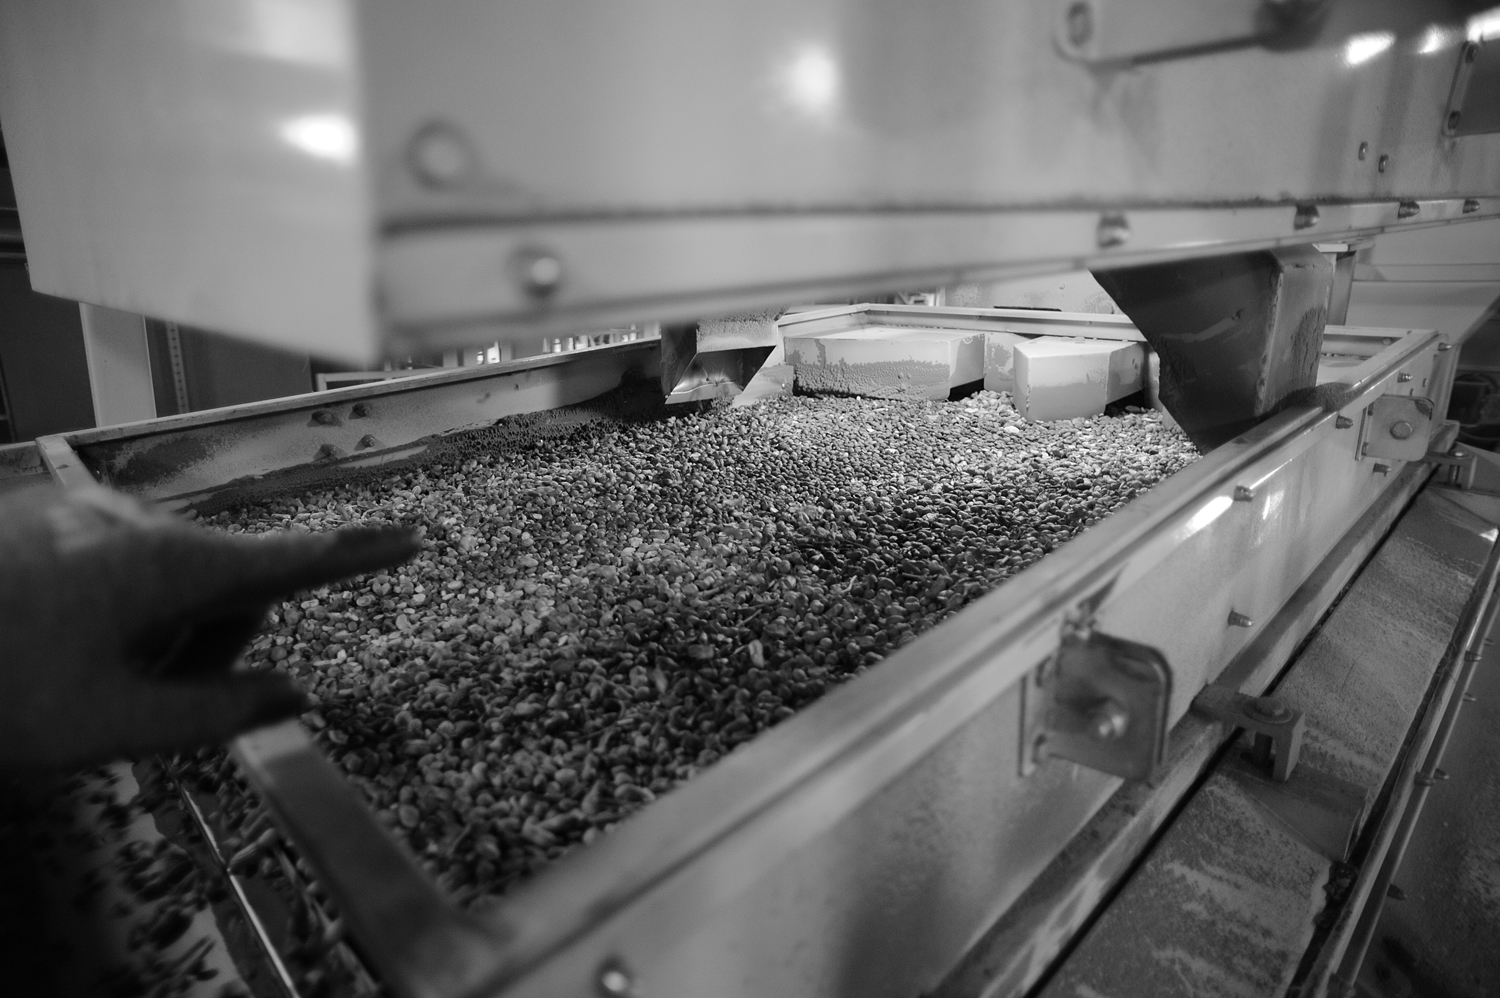 Peanuts are seen making their way through the shelling machinery at Golden Peanut Company.